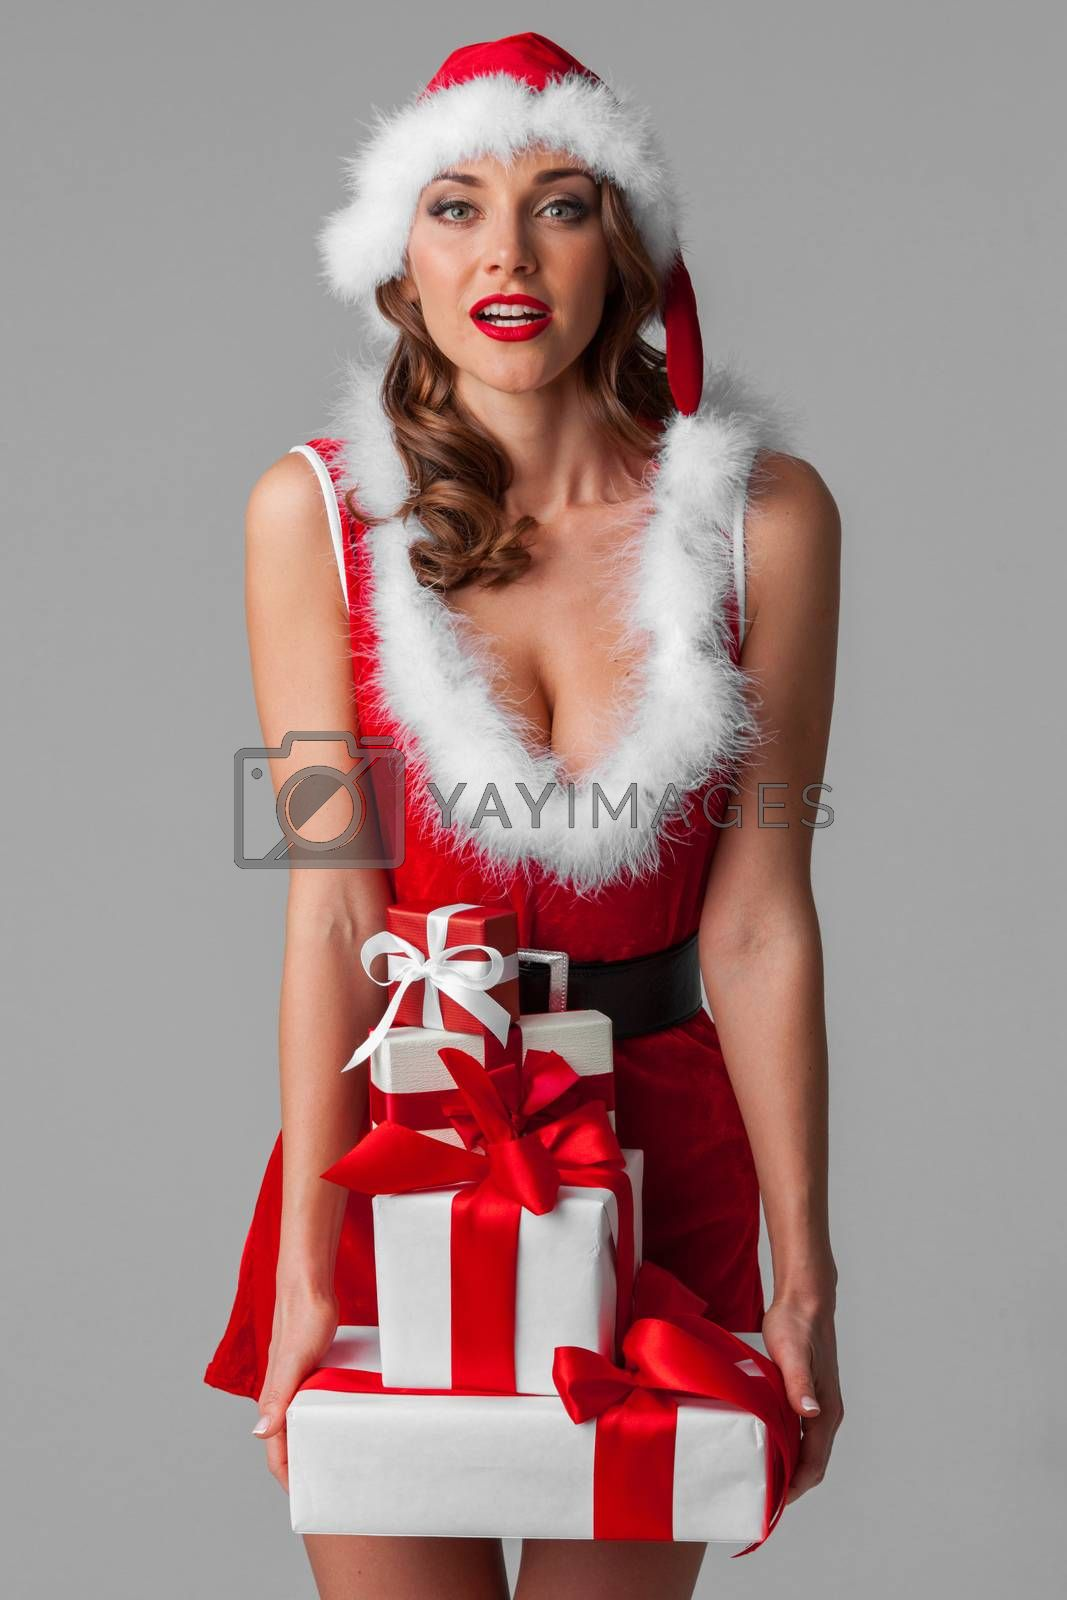 Sexy Mrs santa claus girl holding heavy stack of christmas gifts